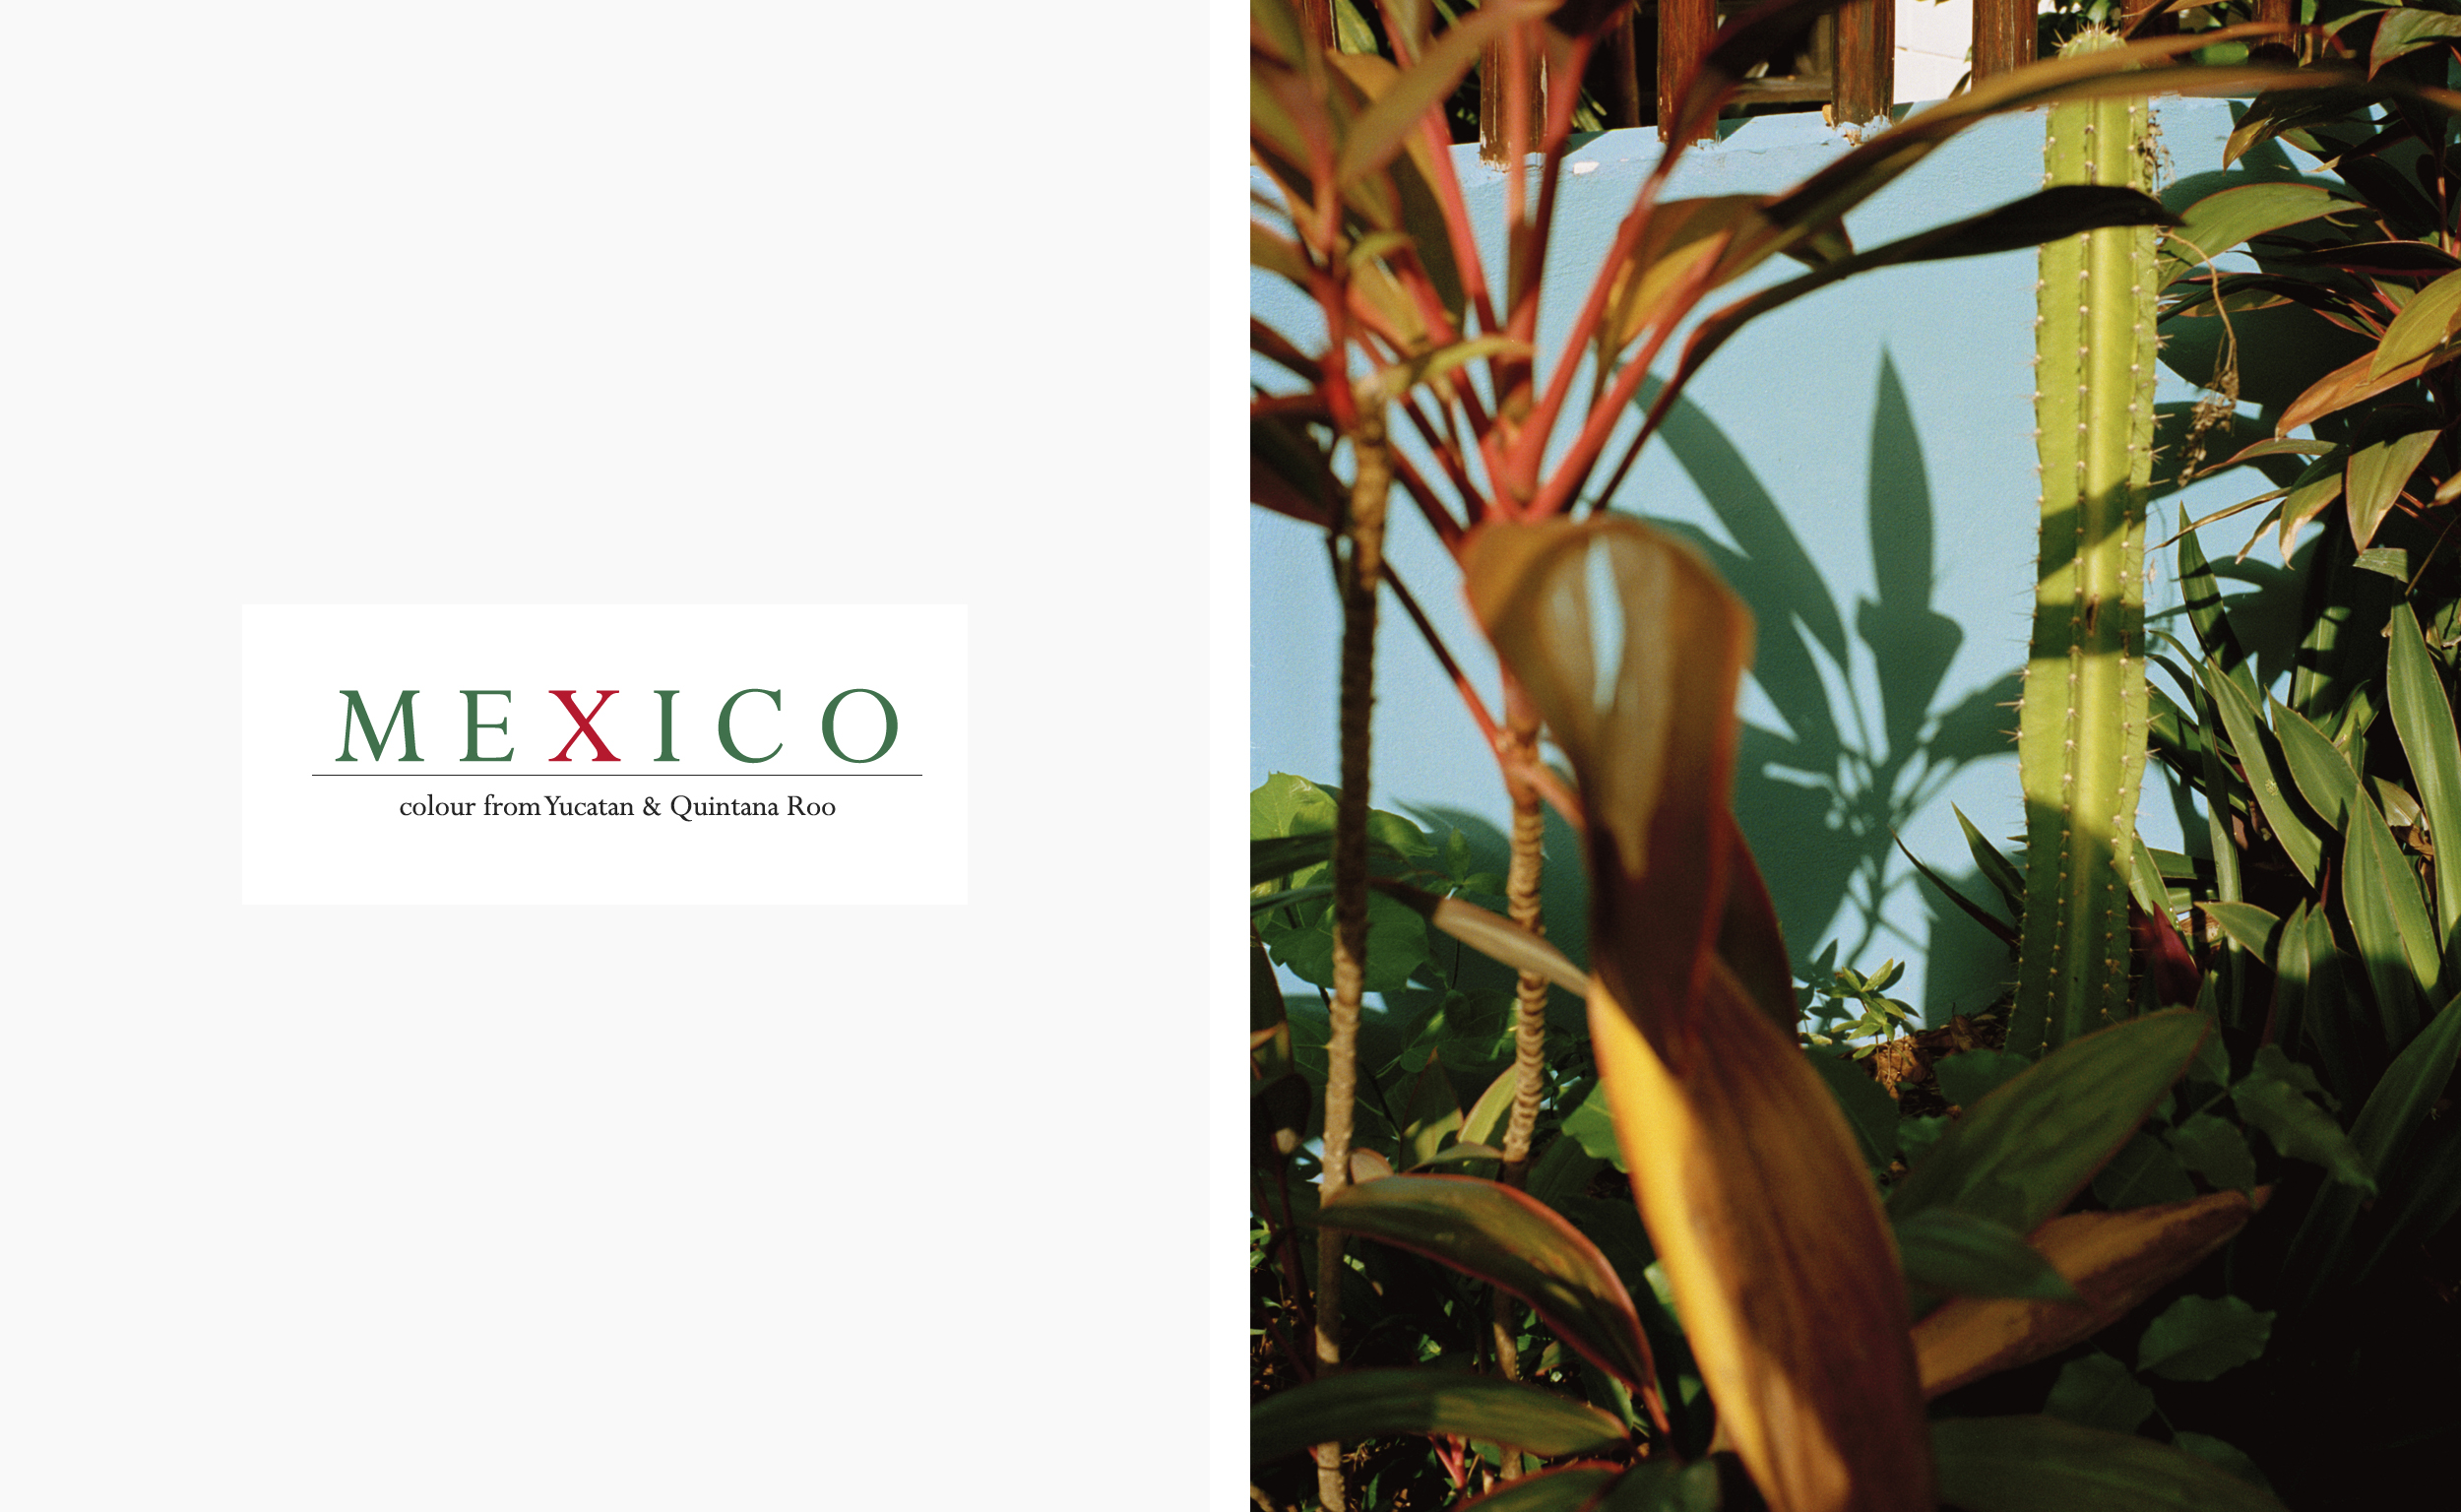 Mexico_Layout_PH-001.jpg